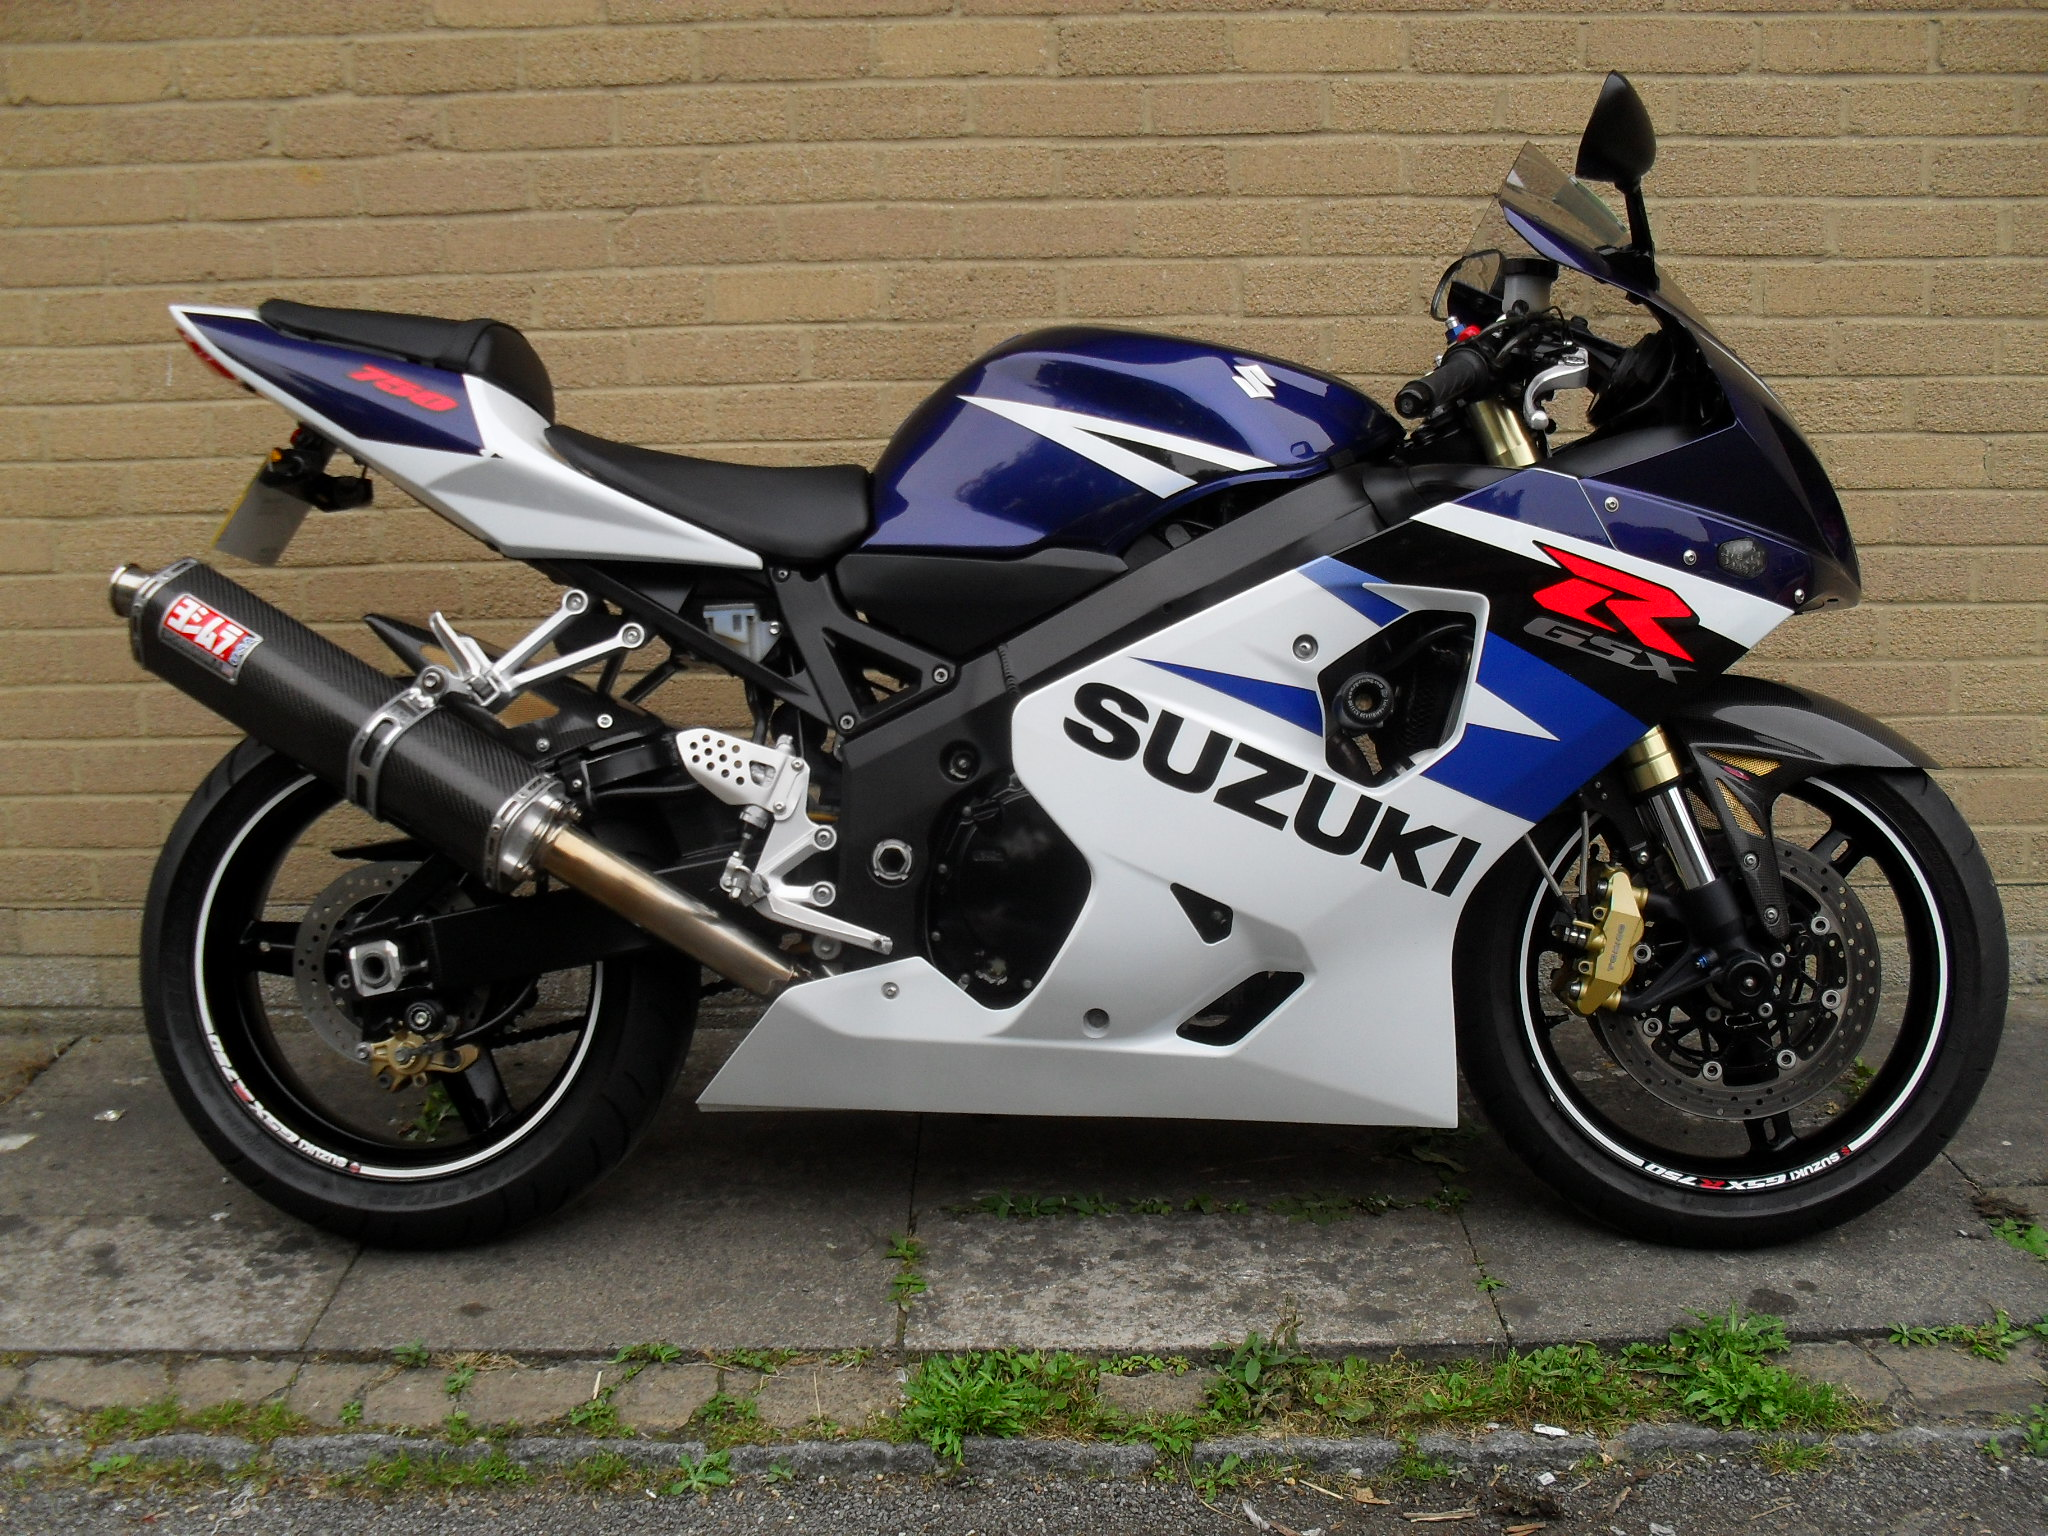 2004 suzuki gsx r 750 pics specs and information. Black Bedroom Furniture Sets. Home Design Ideas